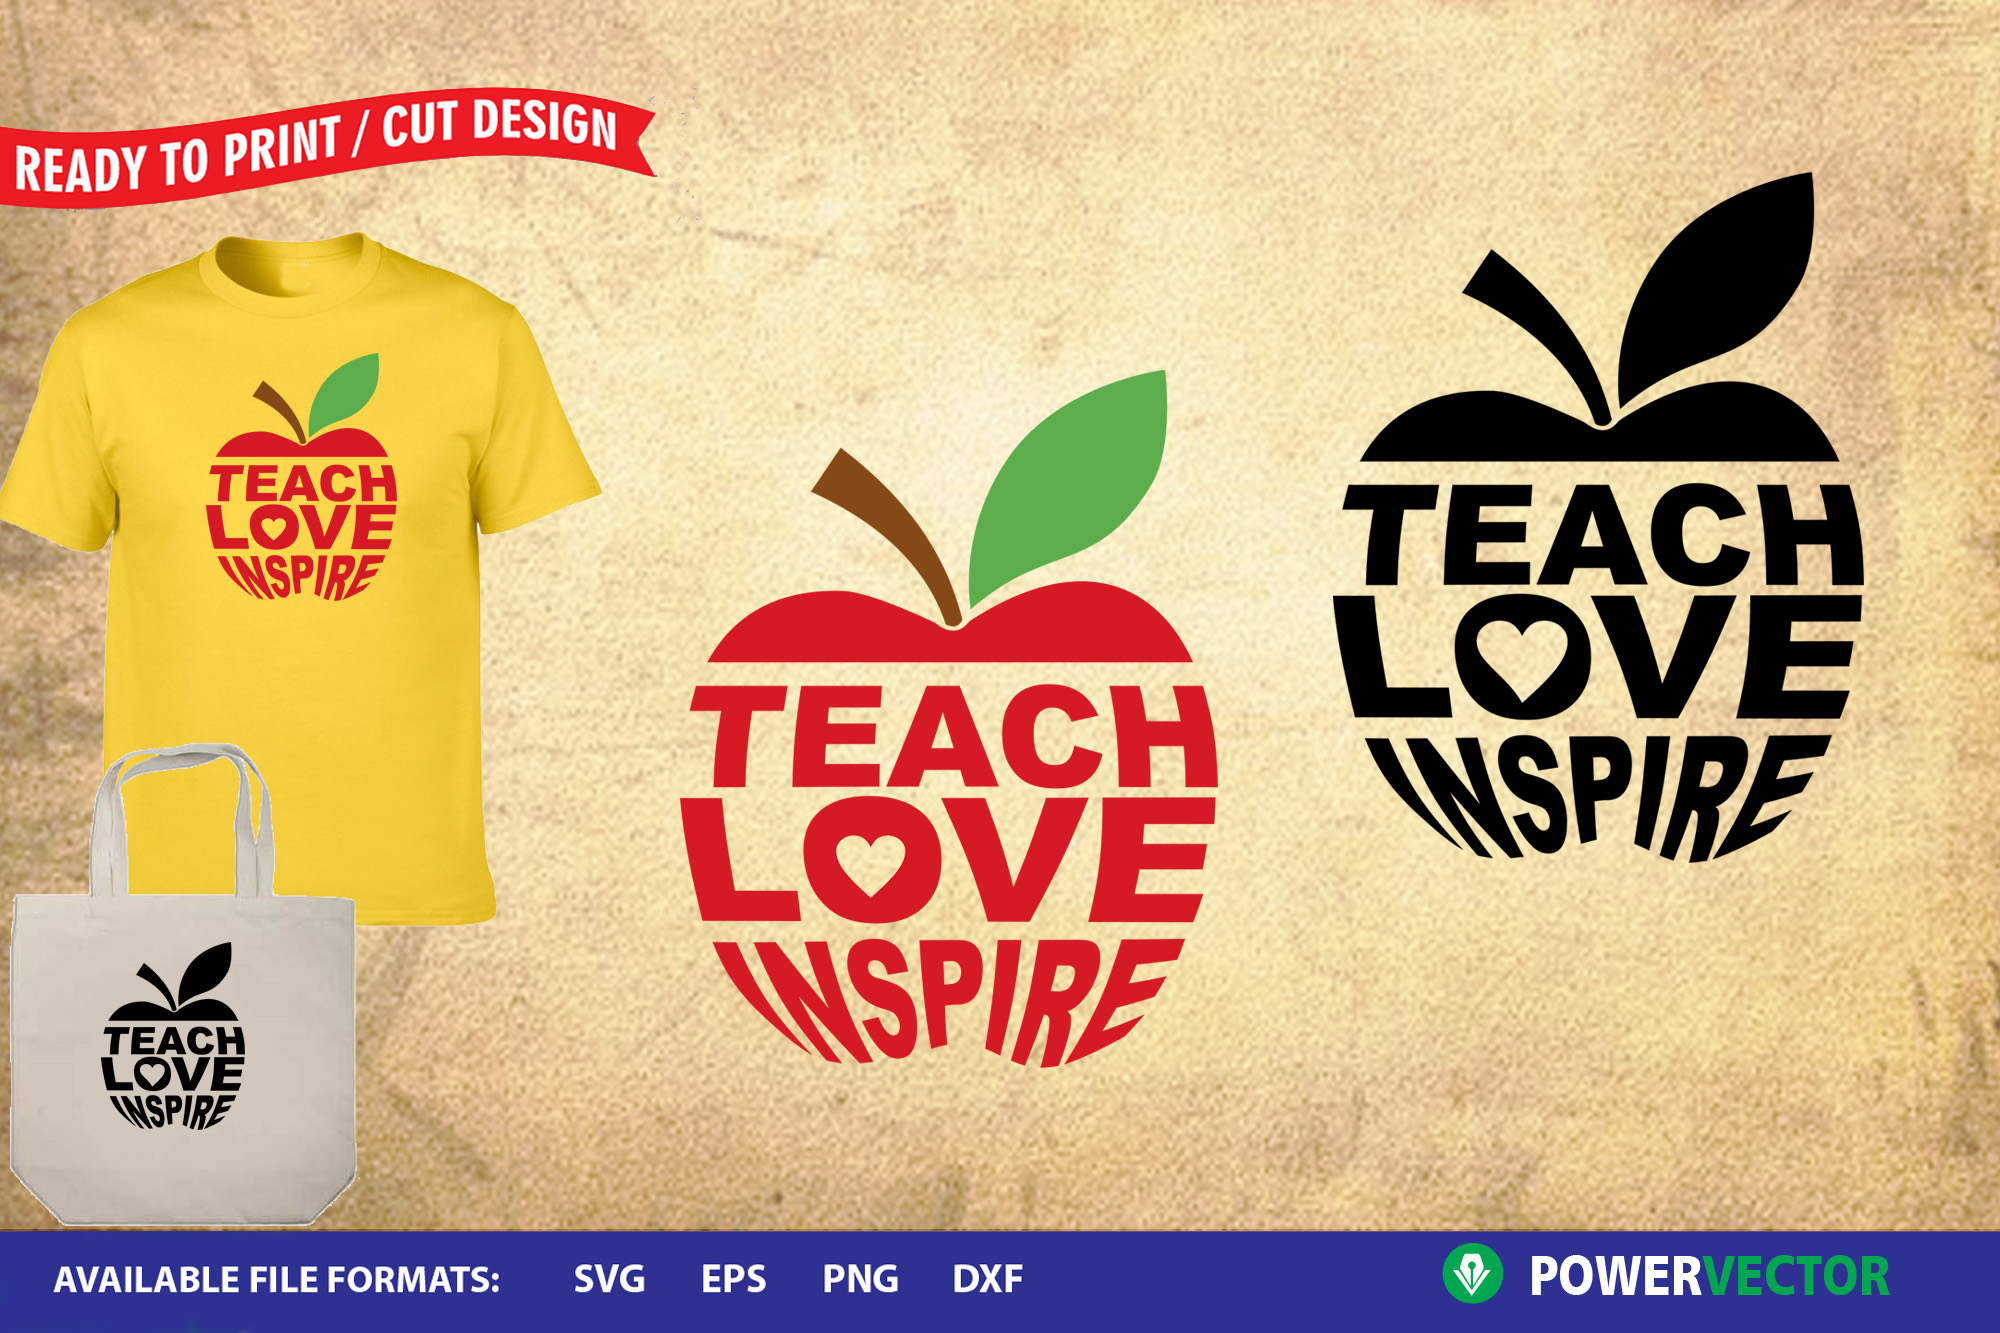 Download Free Teach Love Inspire Graphic By Powervector Creative Fabrica for Cricut Explore, Silhouette and other cutting machines.